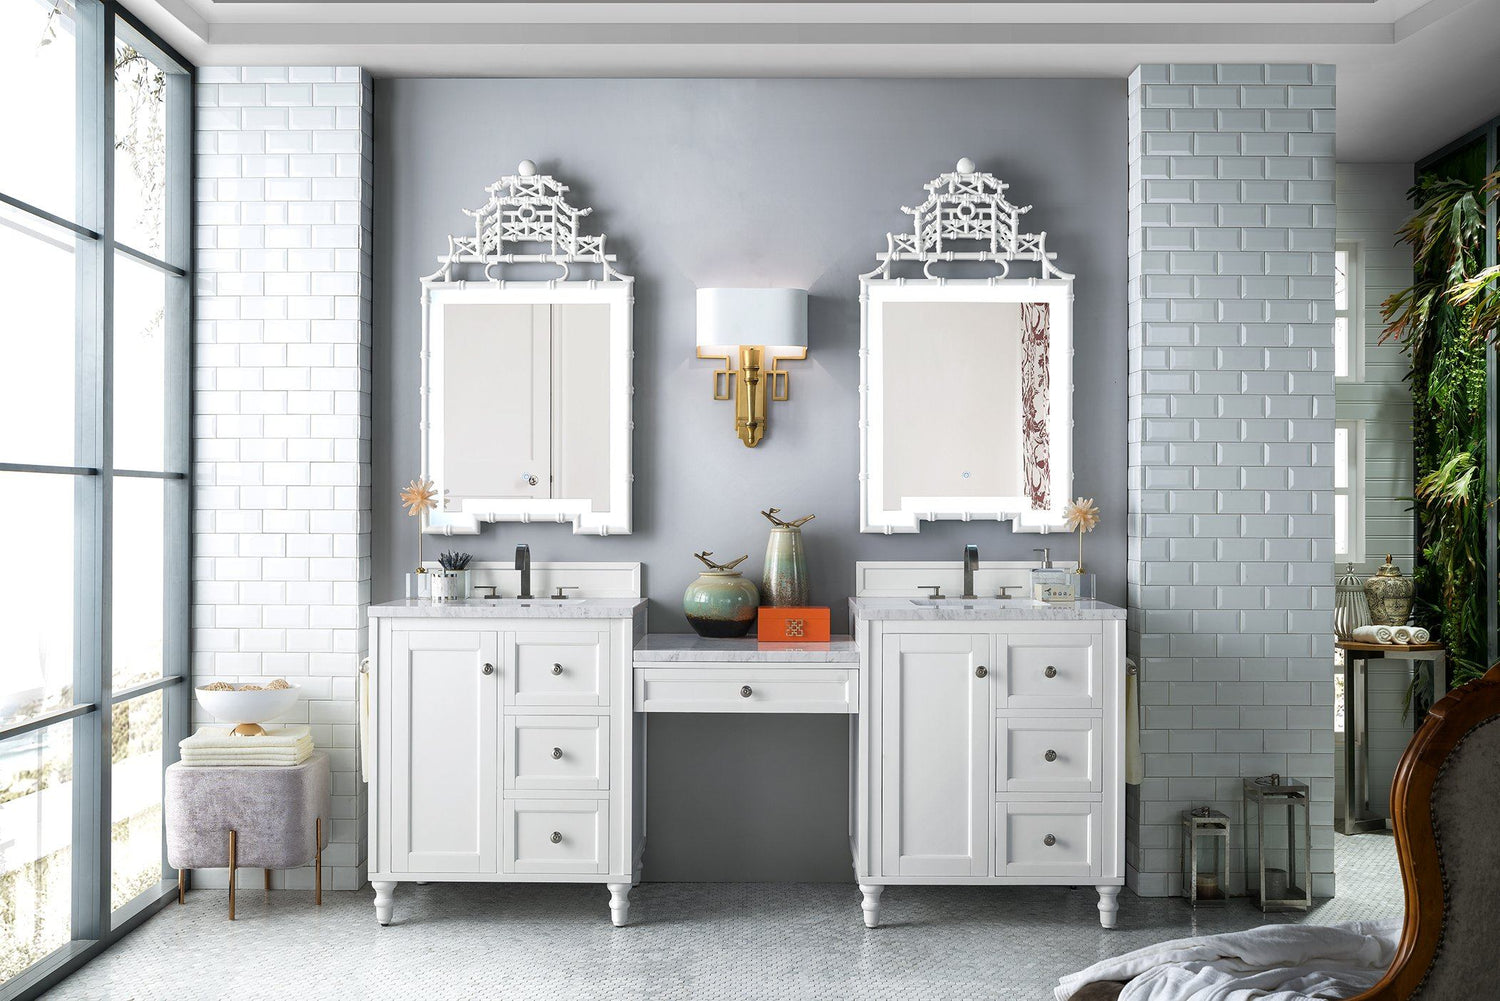 "86"" Copper Cove Encore Bright White Double Sink Bathroom Vanity, James Martin Vanities - vanitiesdepot.com"